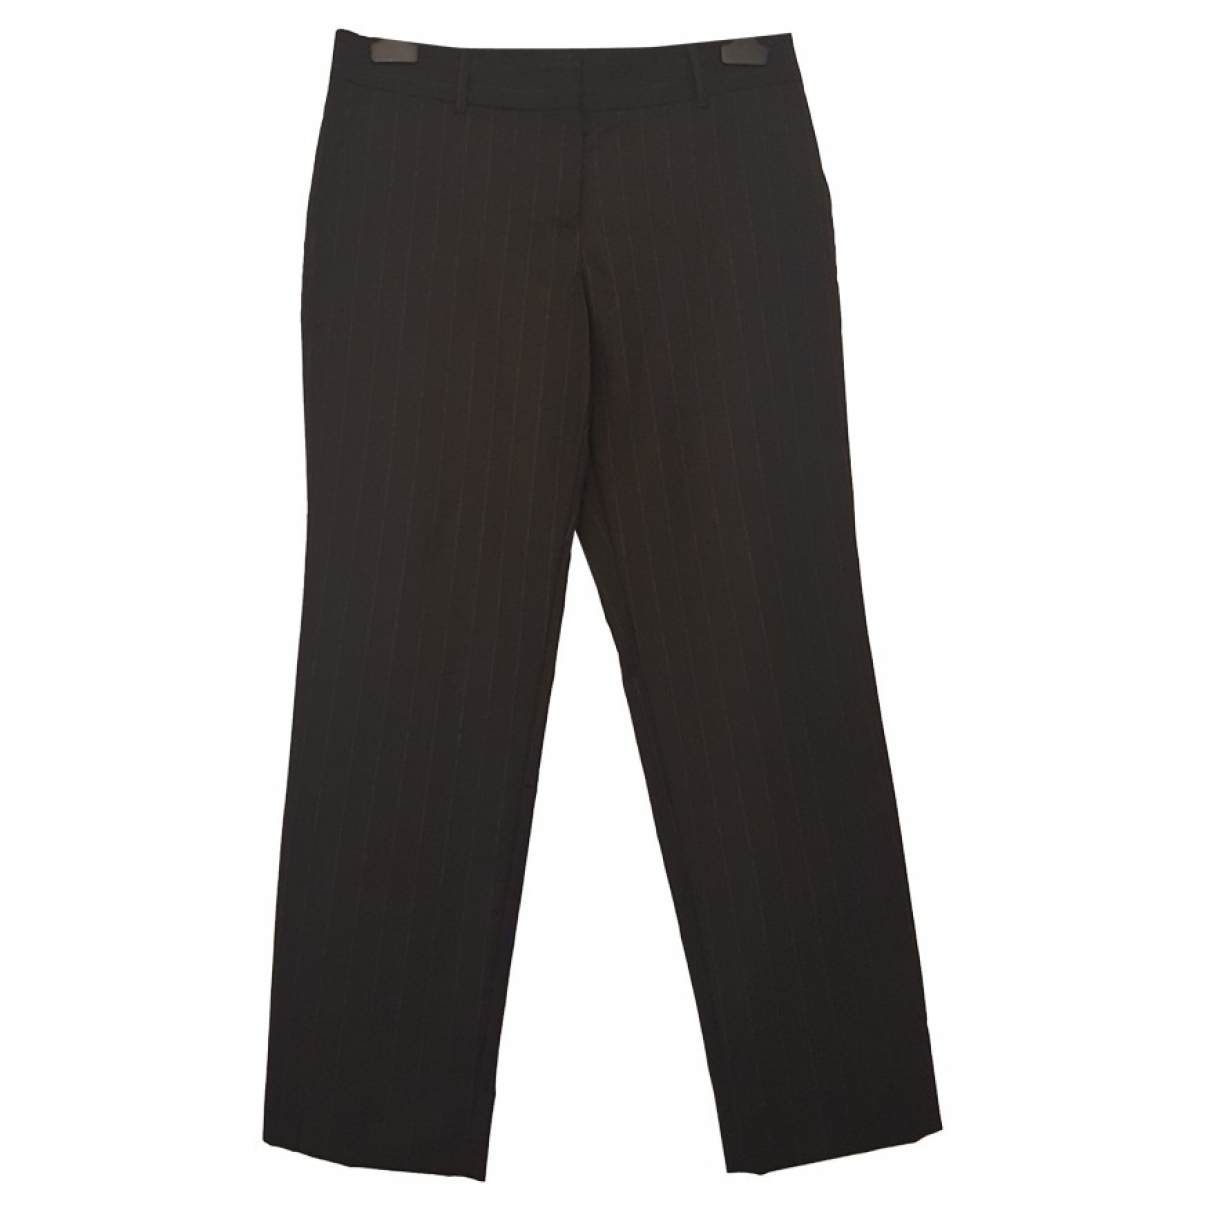 Dolce & Gabbana \N Black Wool Trousers for Women 44 IT